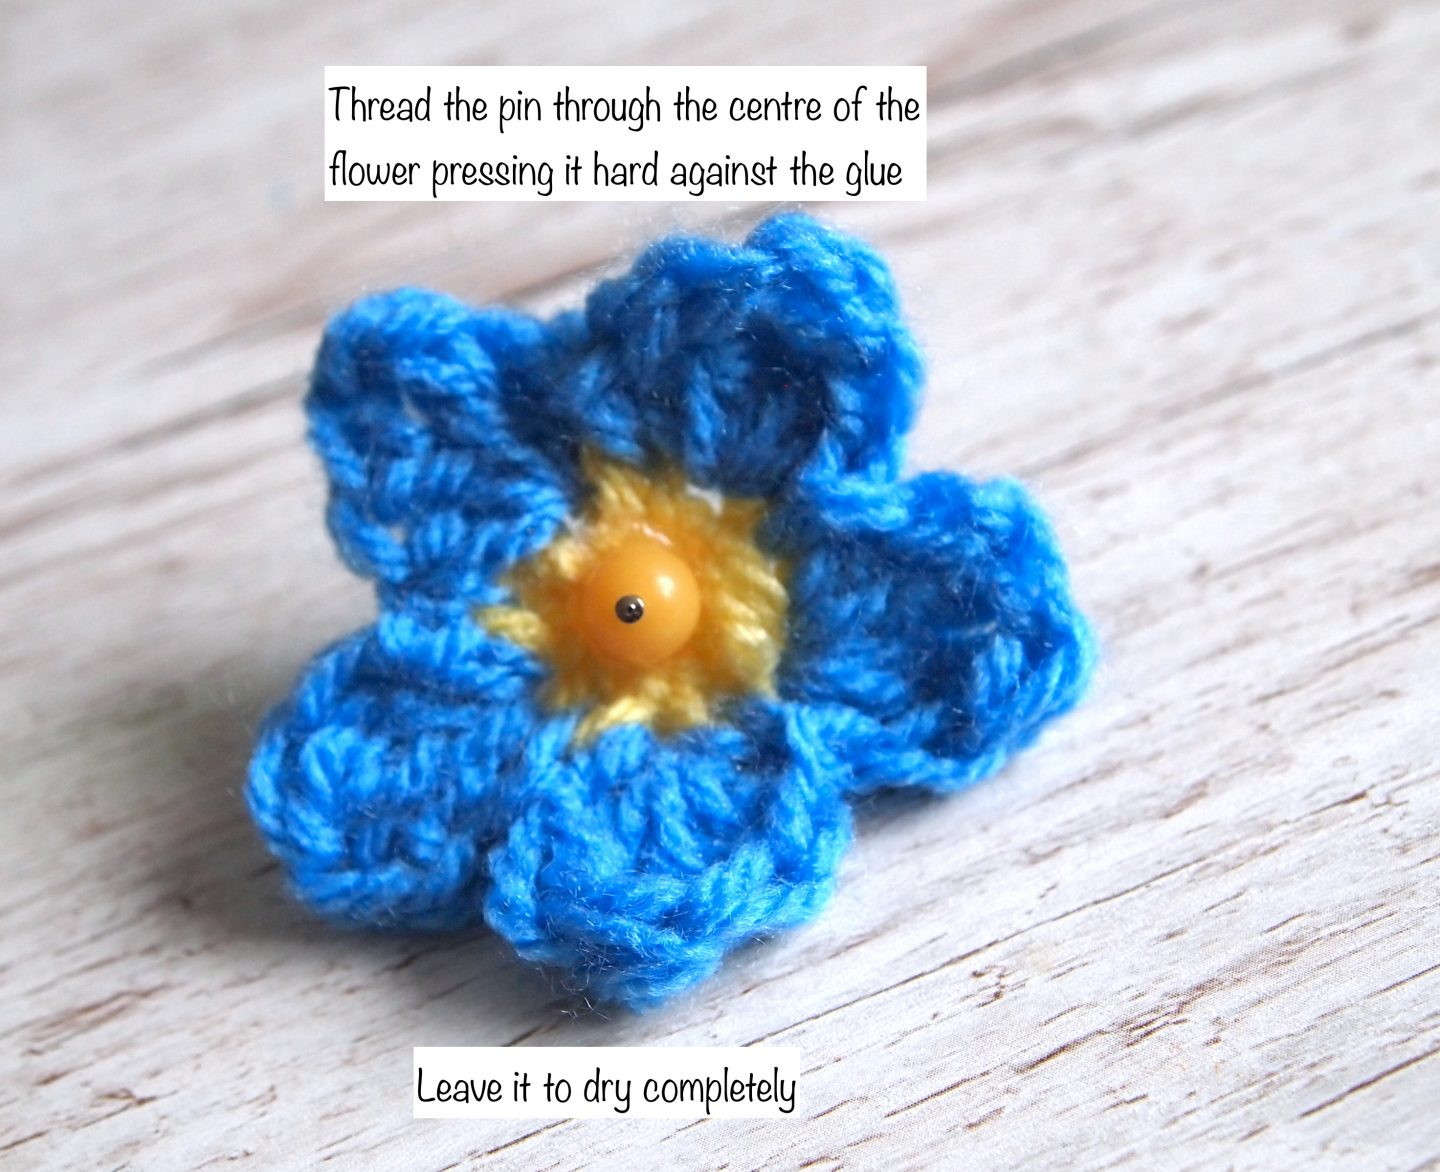 assembling the forget me not crochet wreath